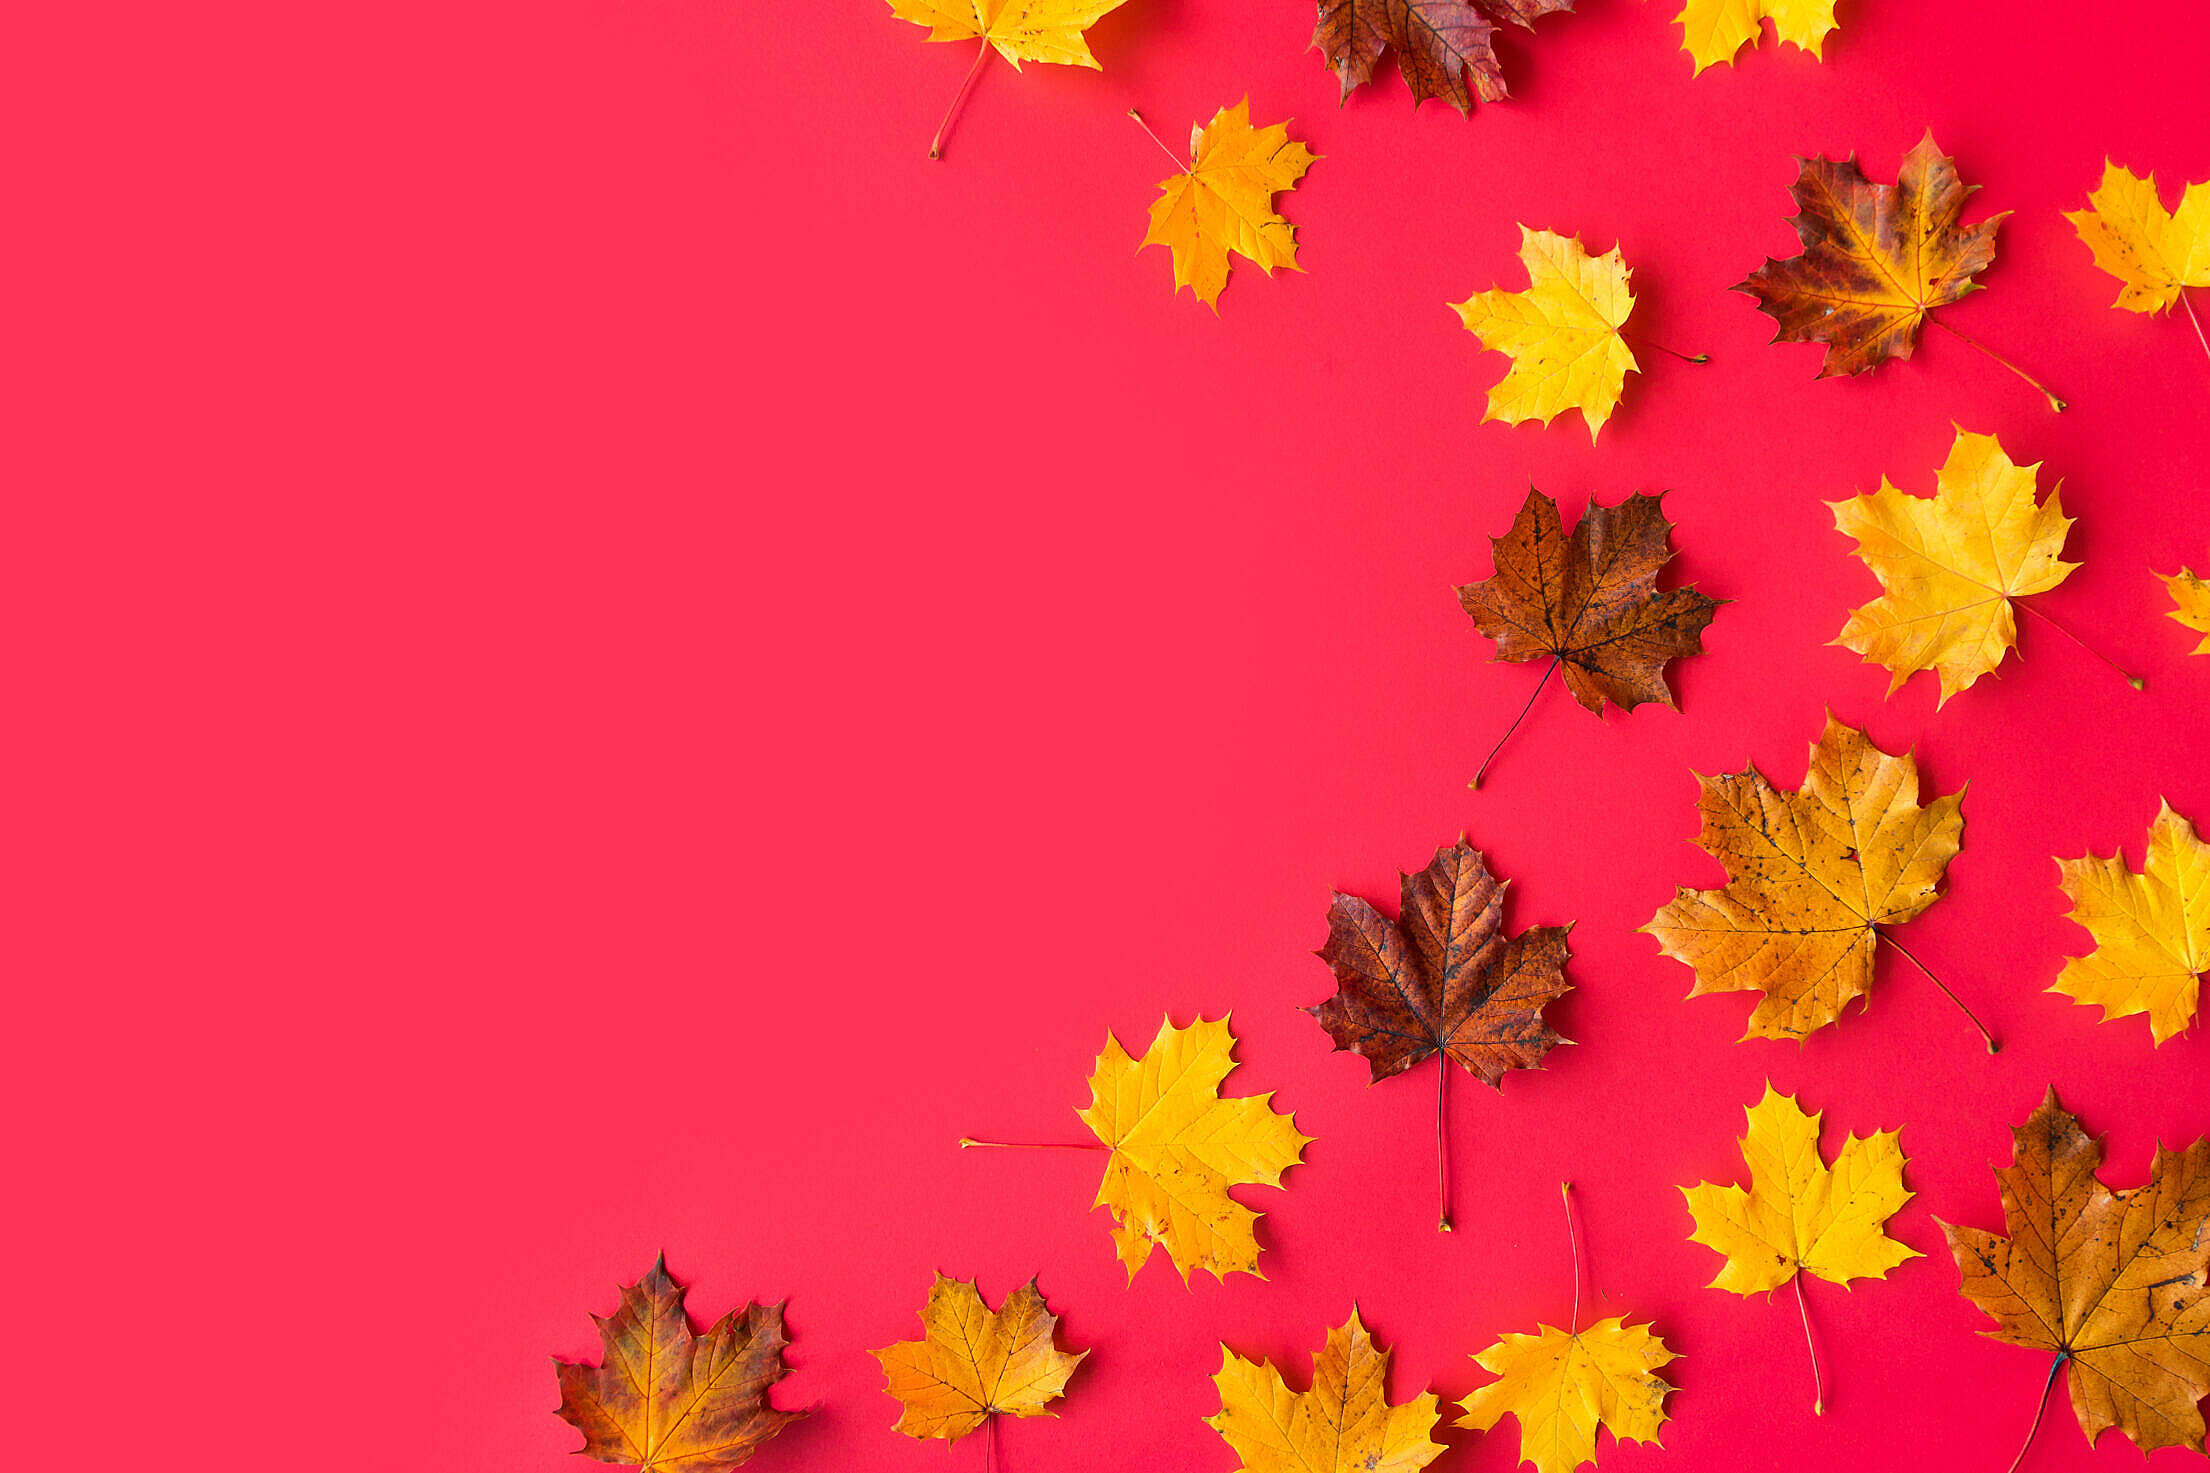 Autumn Leaves on Flat Red Background with Room for Text #2 Free Stock Photo